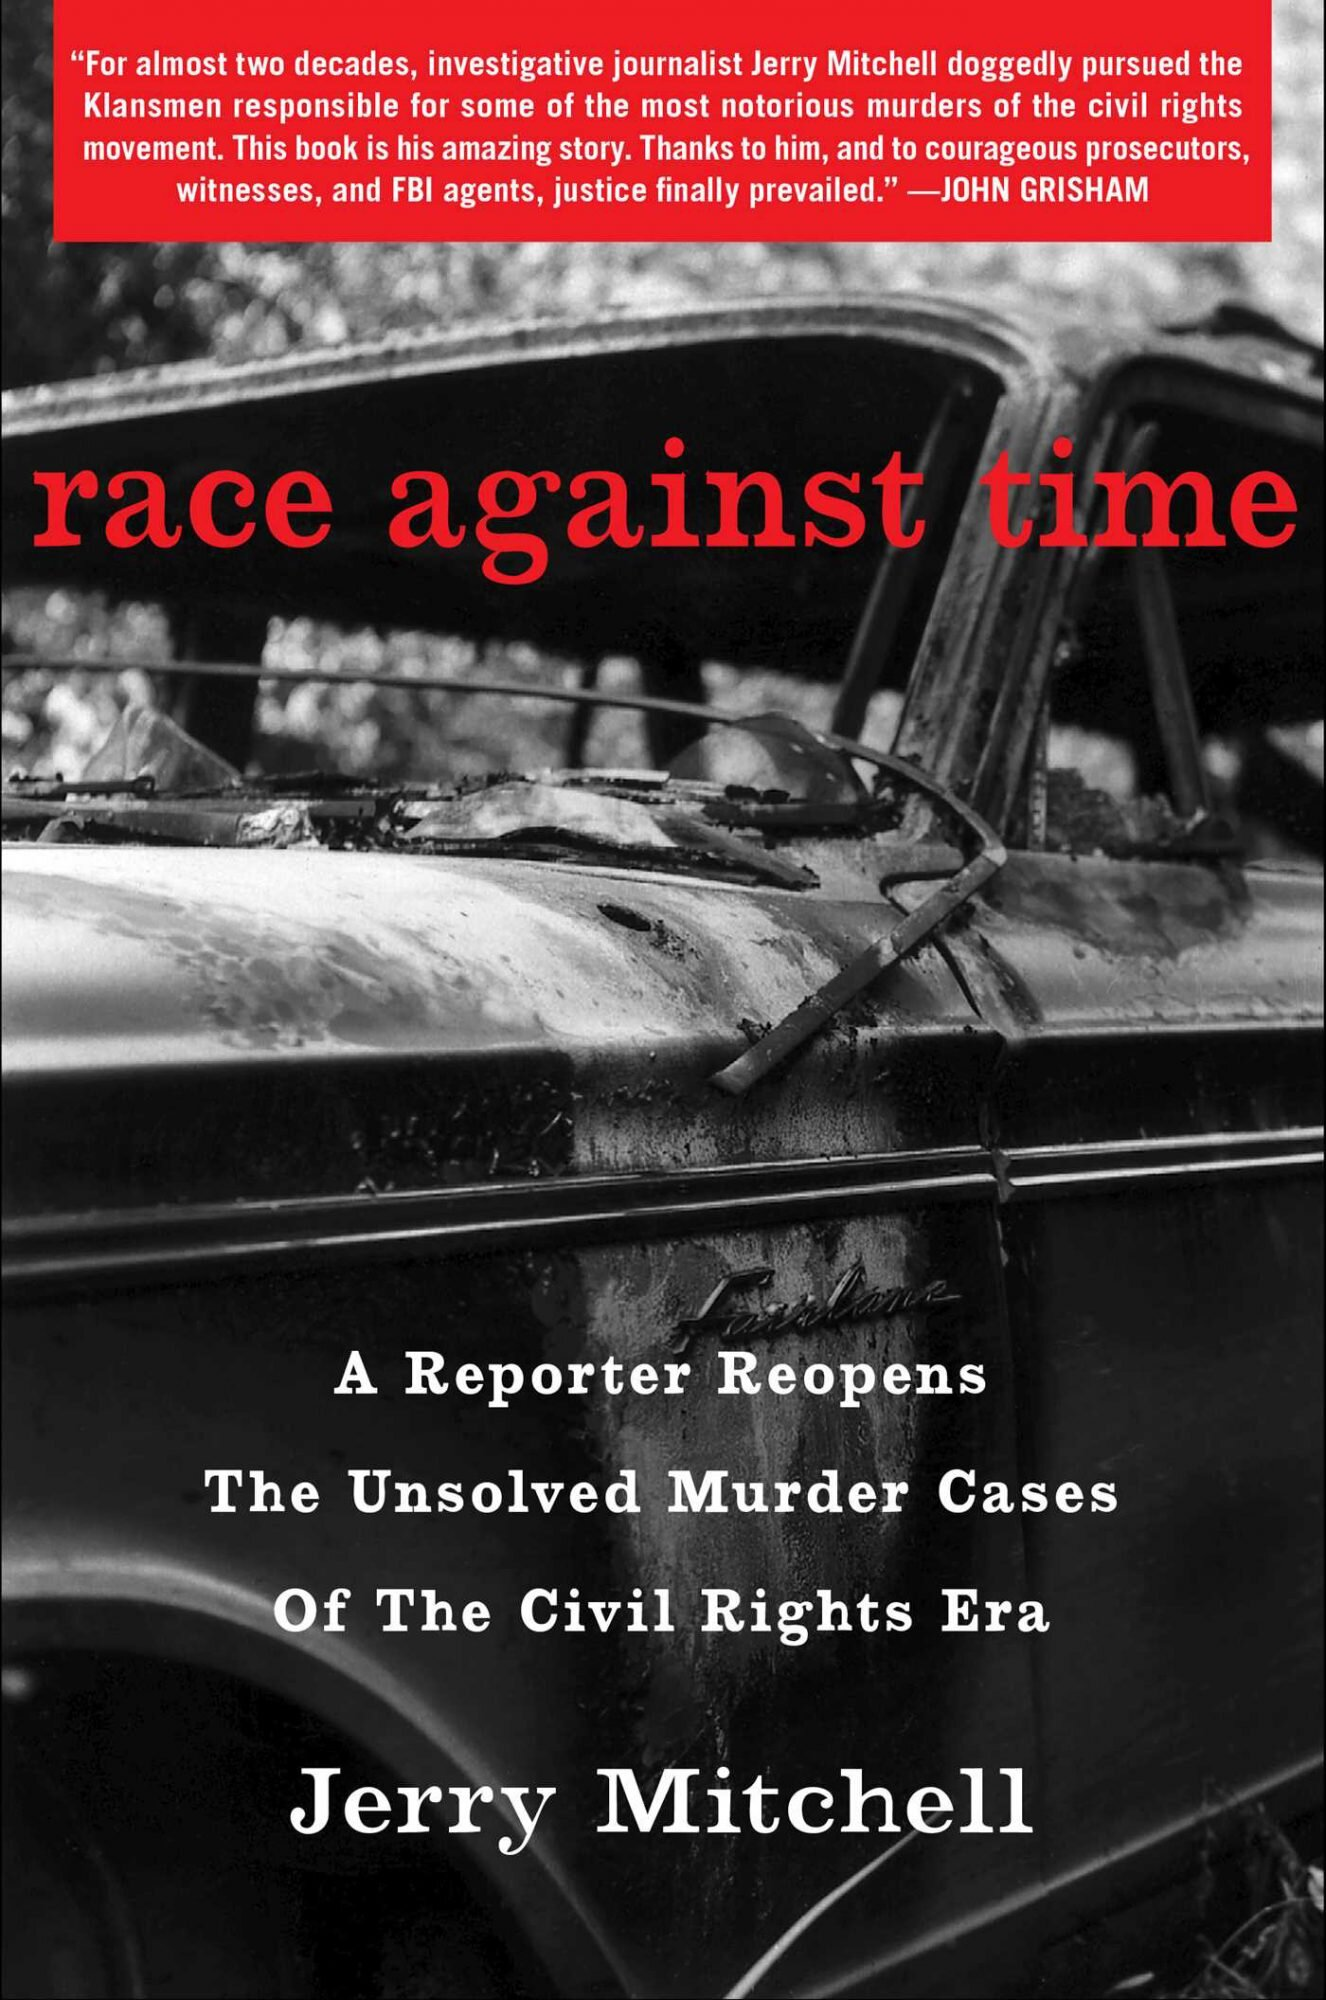 Race Against Time: A Reporter Reopens the Unsolved Murder Cases of the Civil Rights Era, by Jerry Mitchell